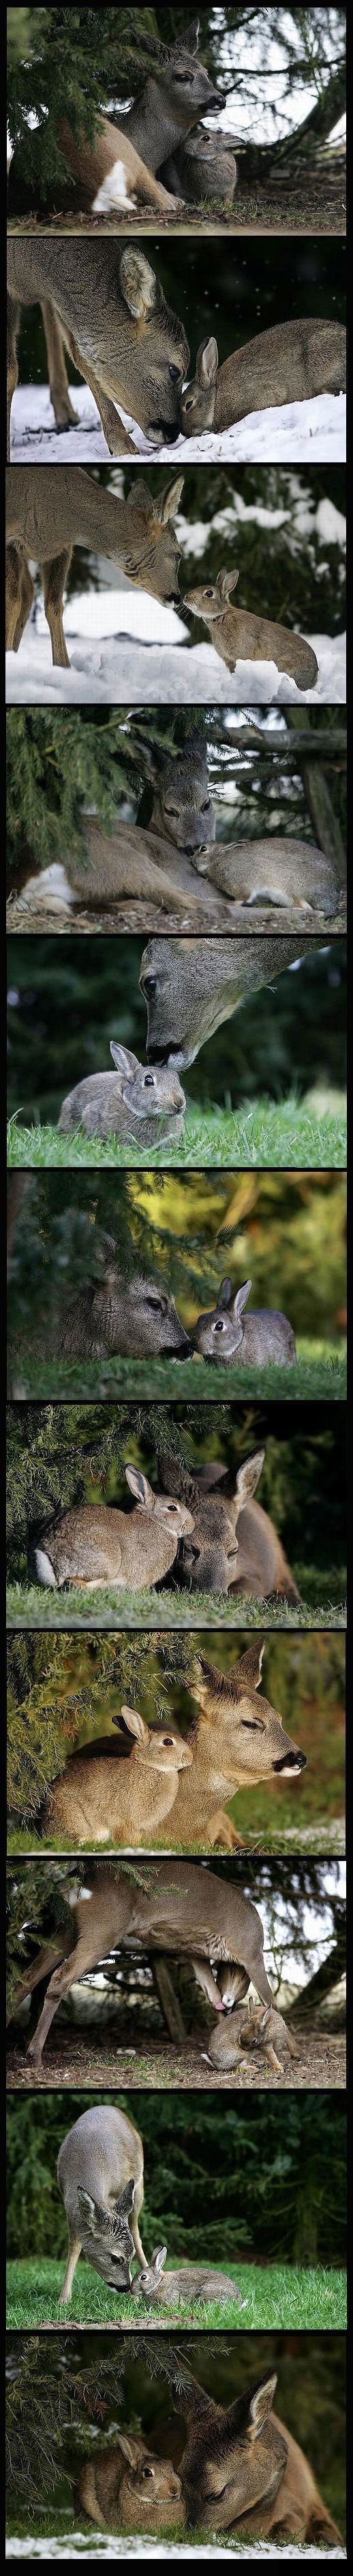 Awww.... Bambi and Thumper! <3 Inter-species friendships.